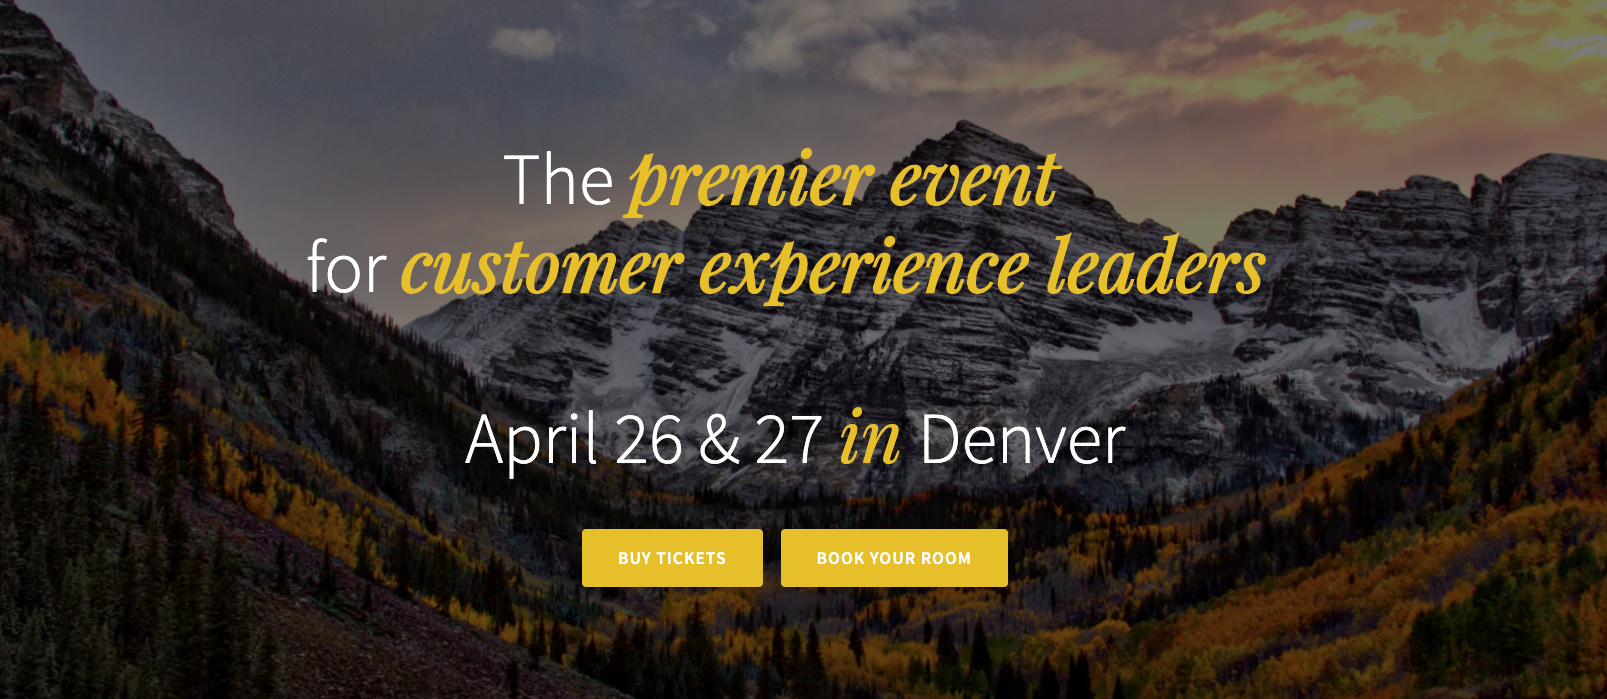 Workshop host at Customer Experience event | Denver, CO